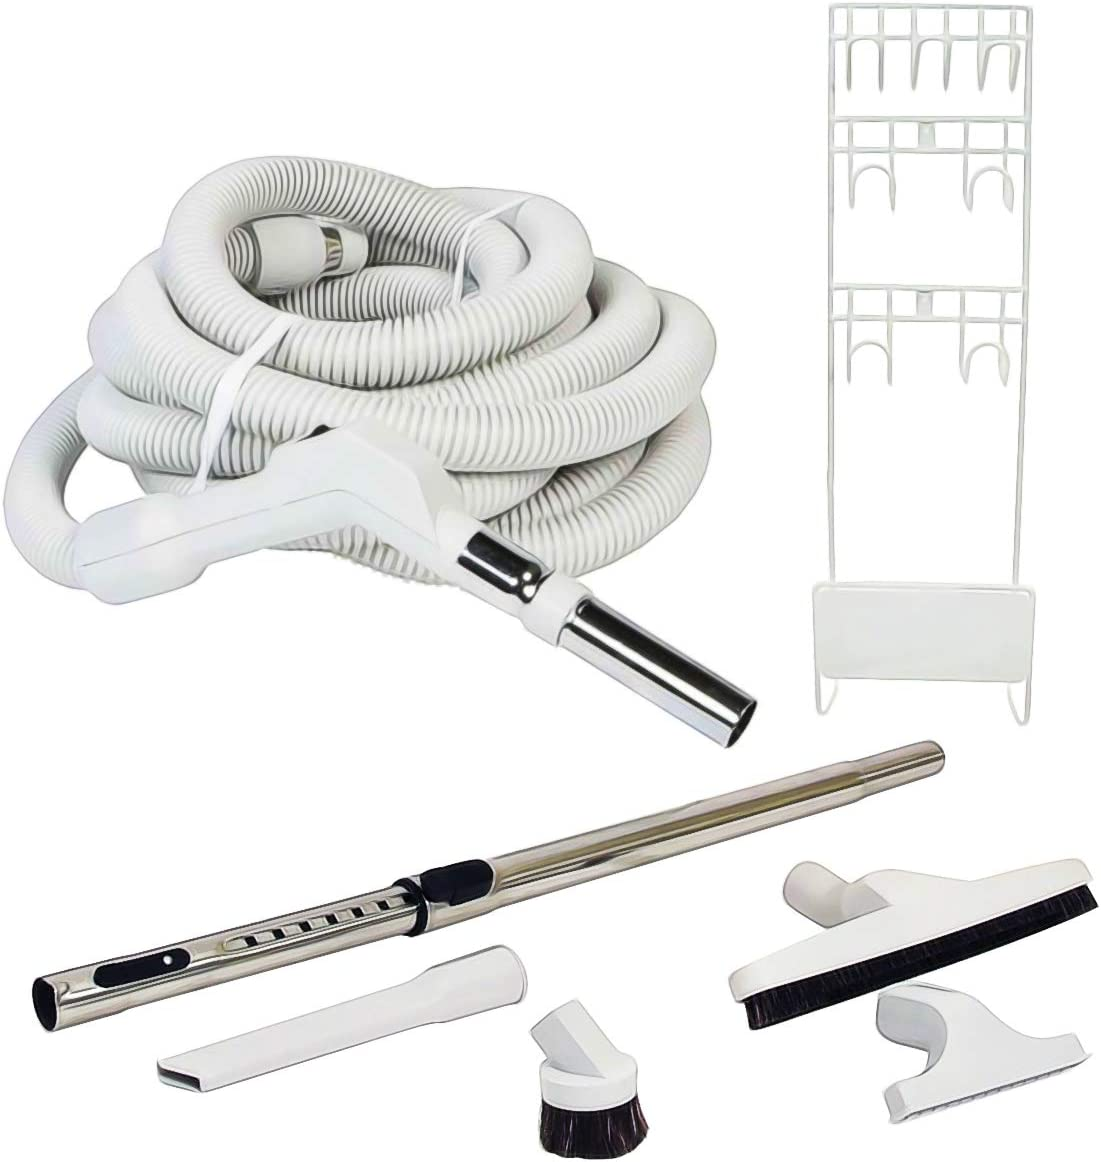 ZVac Universal Central Vacuum Accessory Kit for Central Vacuum Systems with 30 ft On/Off Button Low-Voltage Standard Hose Compatible with Beam, Nutone, Electrolux, Hayden, Centec, Kenmore & Vacumaid